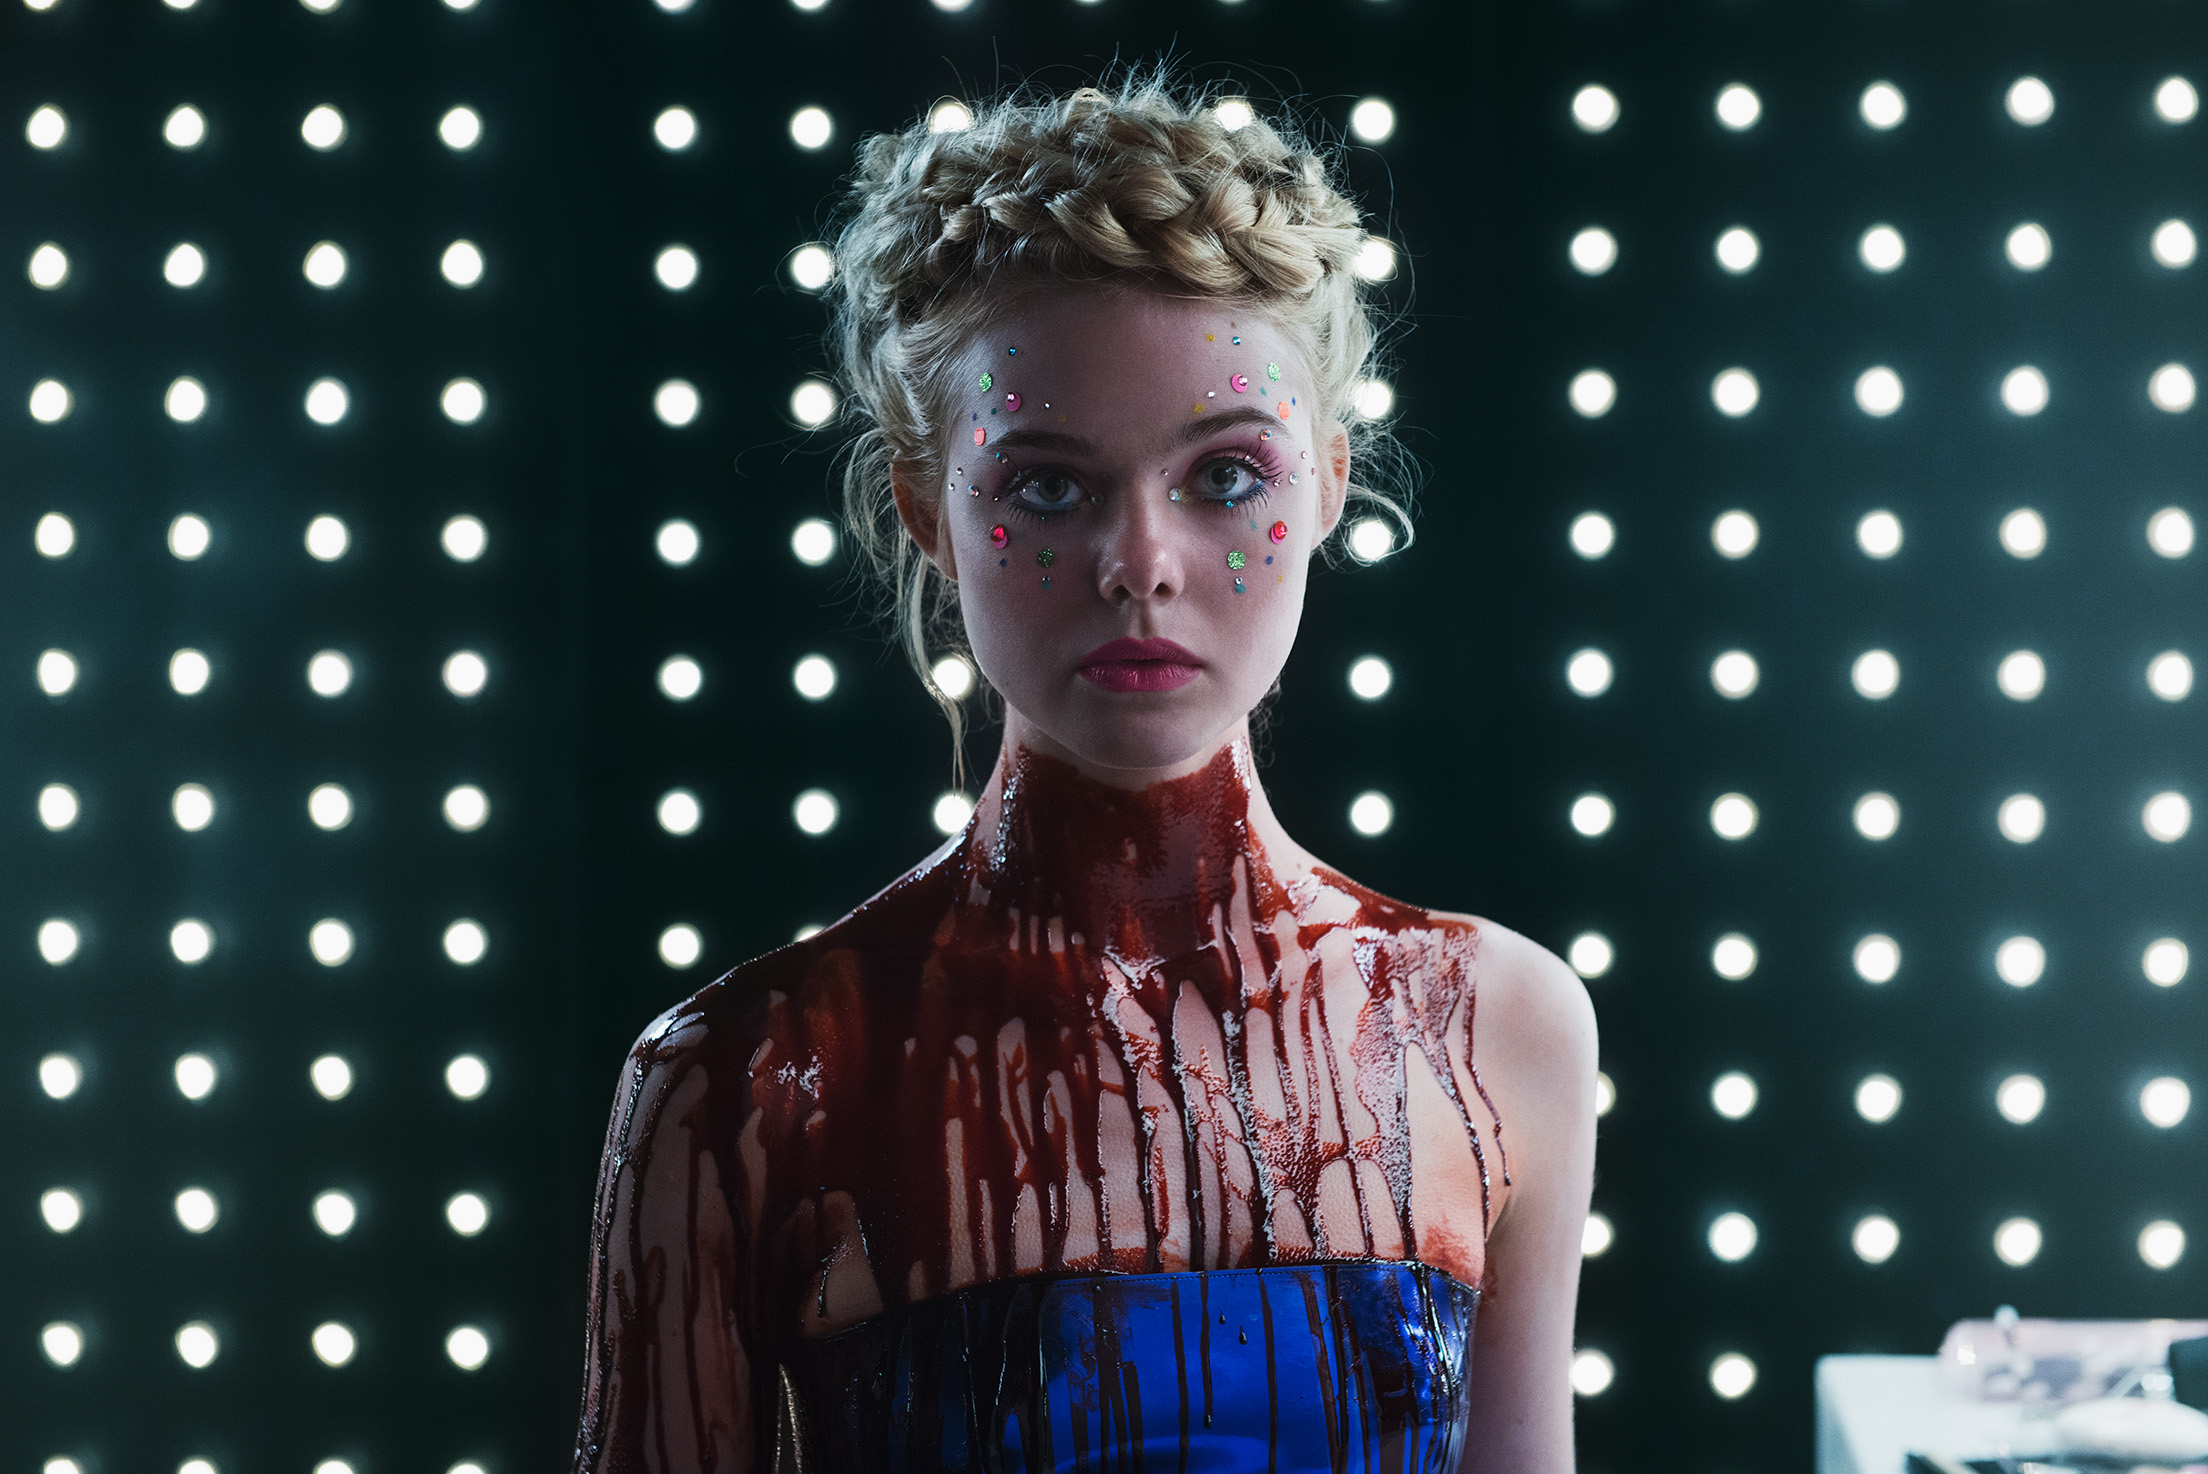 Elle Fanning plays Jesse, a young model who appears innocent but is actually as predatory as her ruthless rivals.